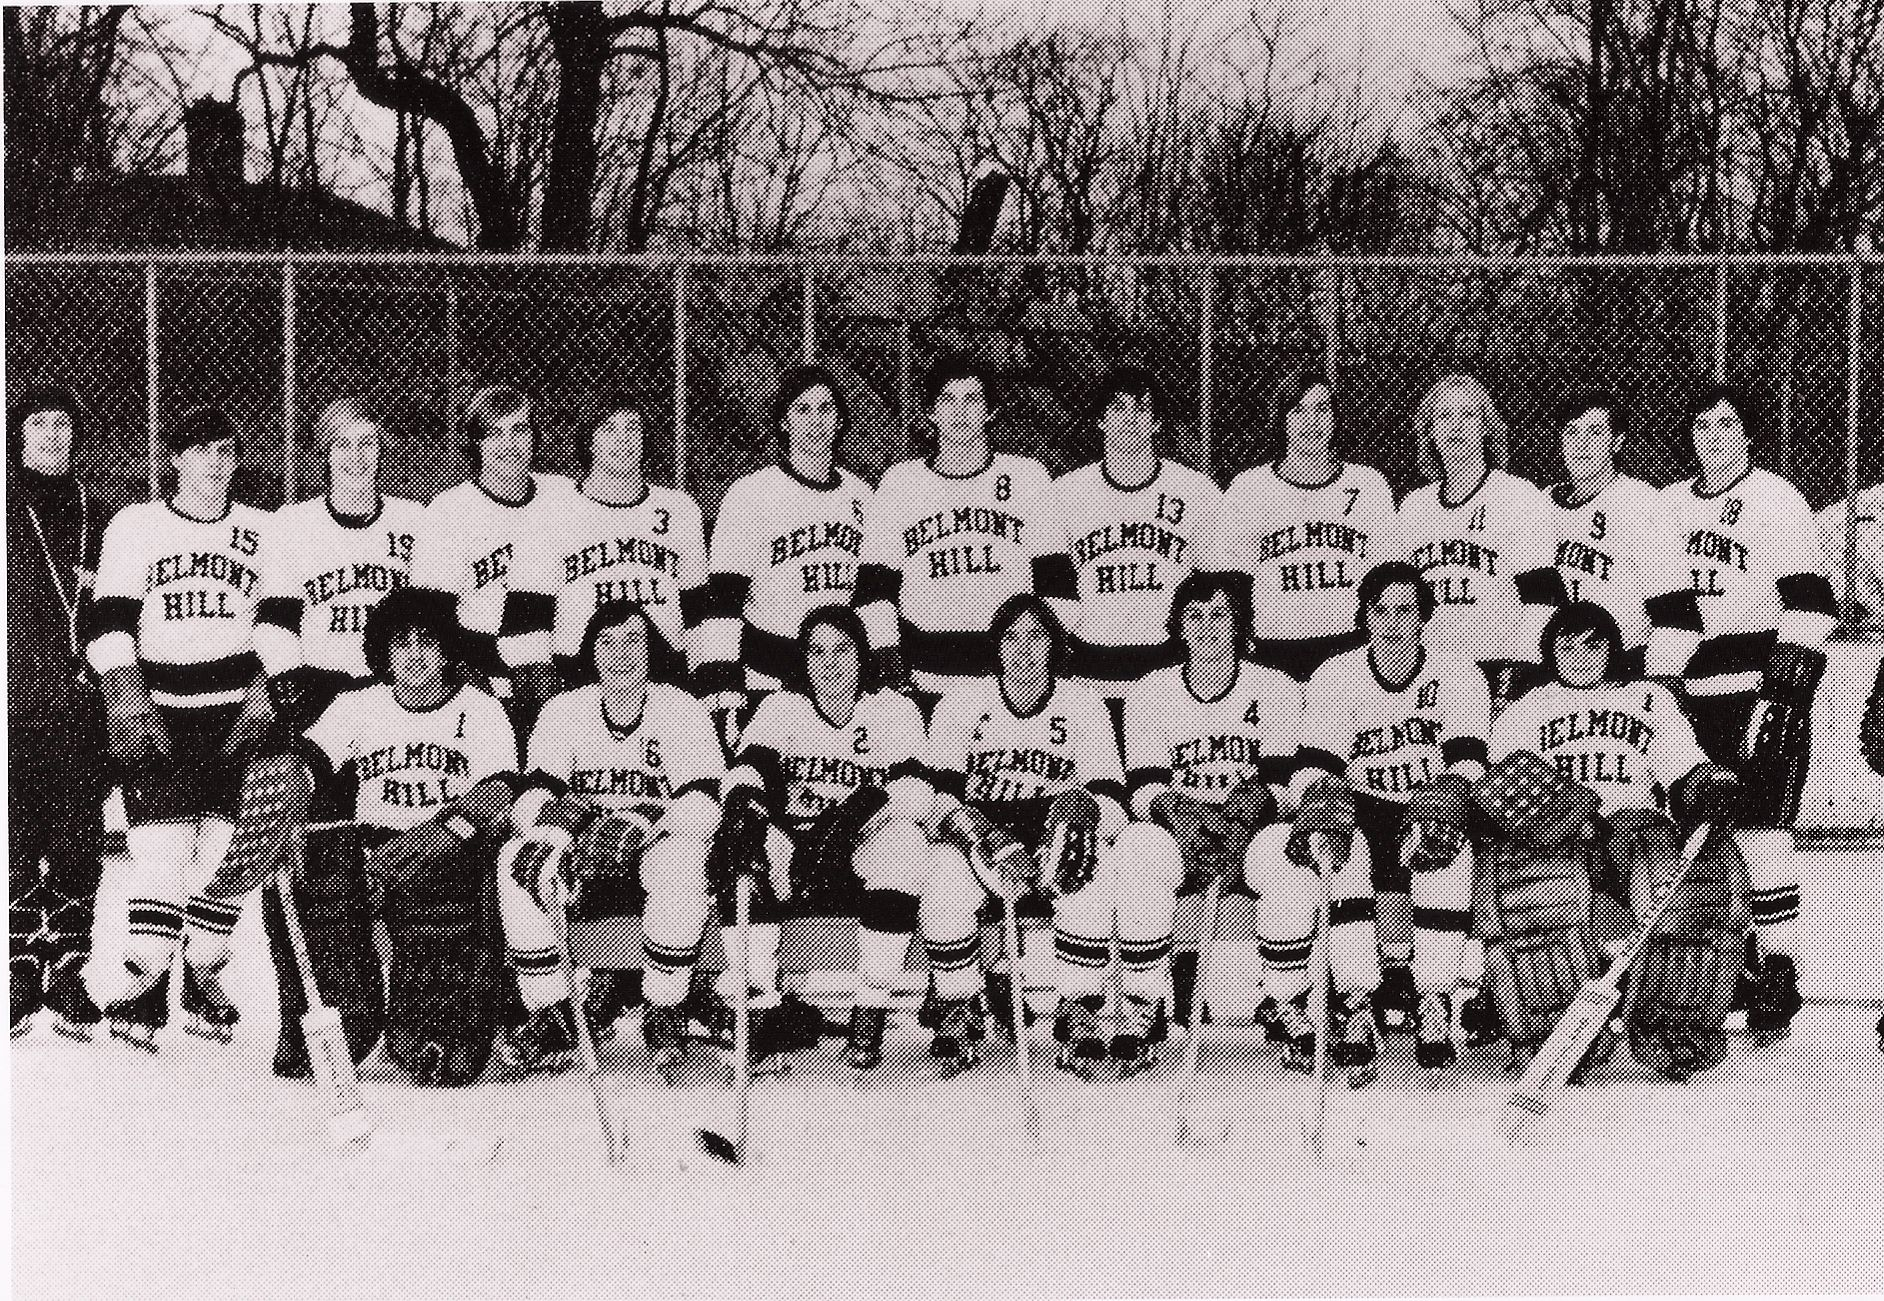 First Row: Wald, Flynn, Dutton, Kelley P., Quinn, Cauchon, Freeman,  Second Row: Mr. Martin, Milley, Wisentaner, French, Mannix, Schley, Lyons, Sweeney, Kelley, D., Dunfey, Weeks, Finnerty